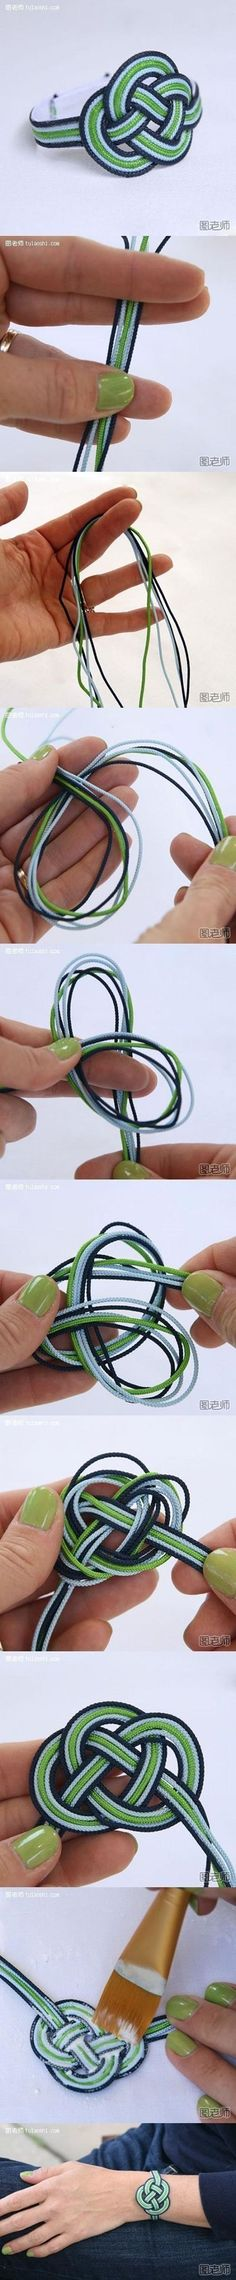 How to make love bracelet step by step DIY instructions / How To Instructions: